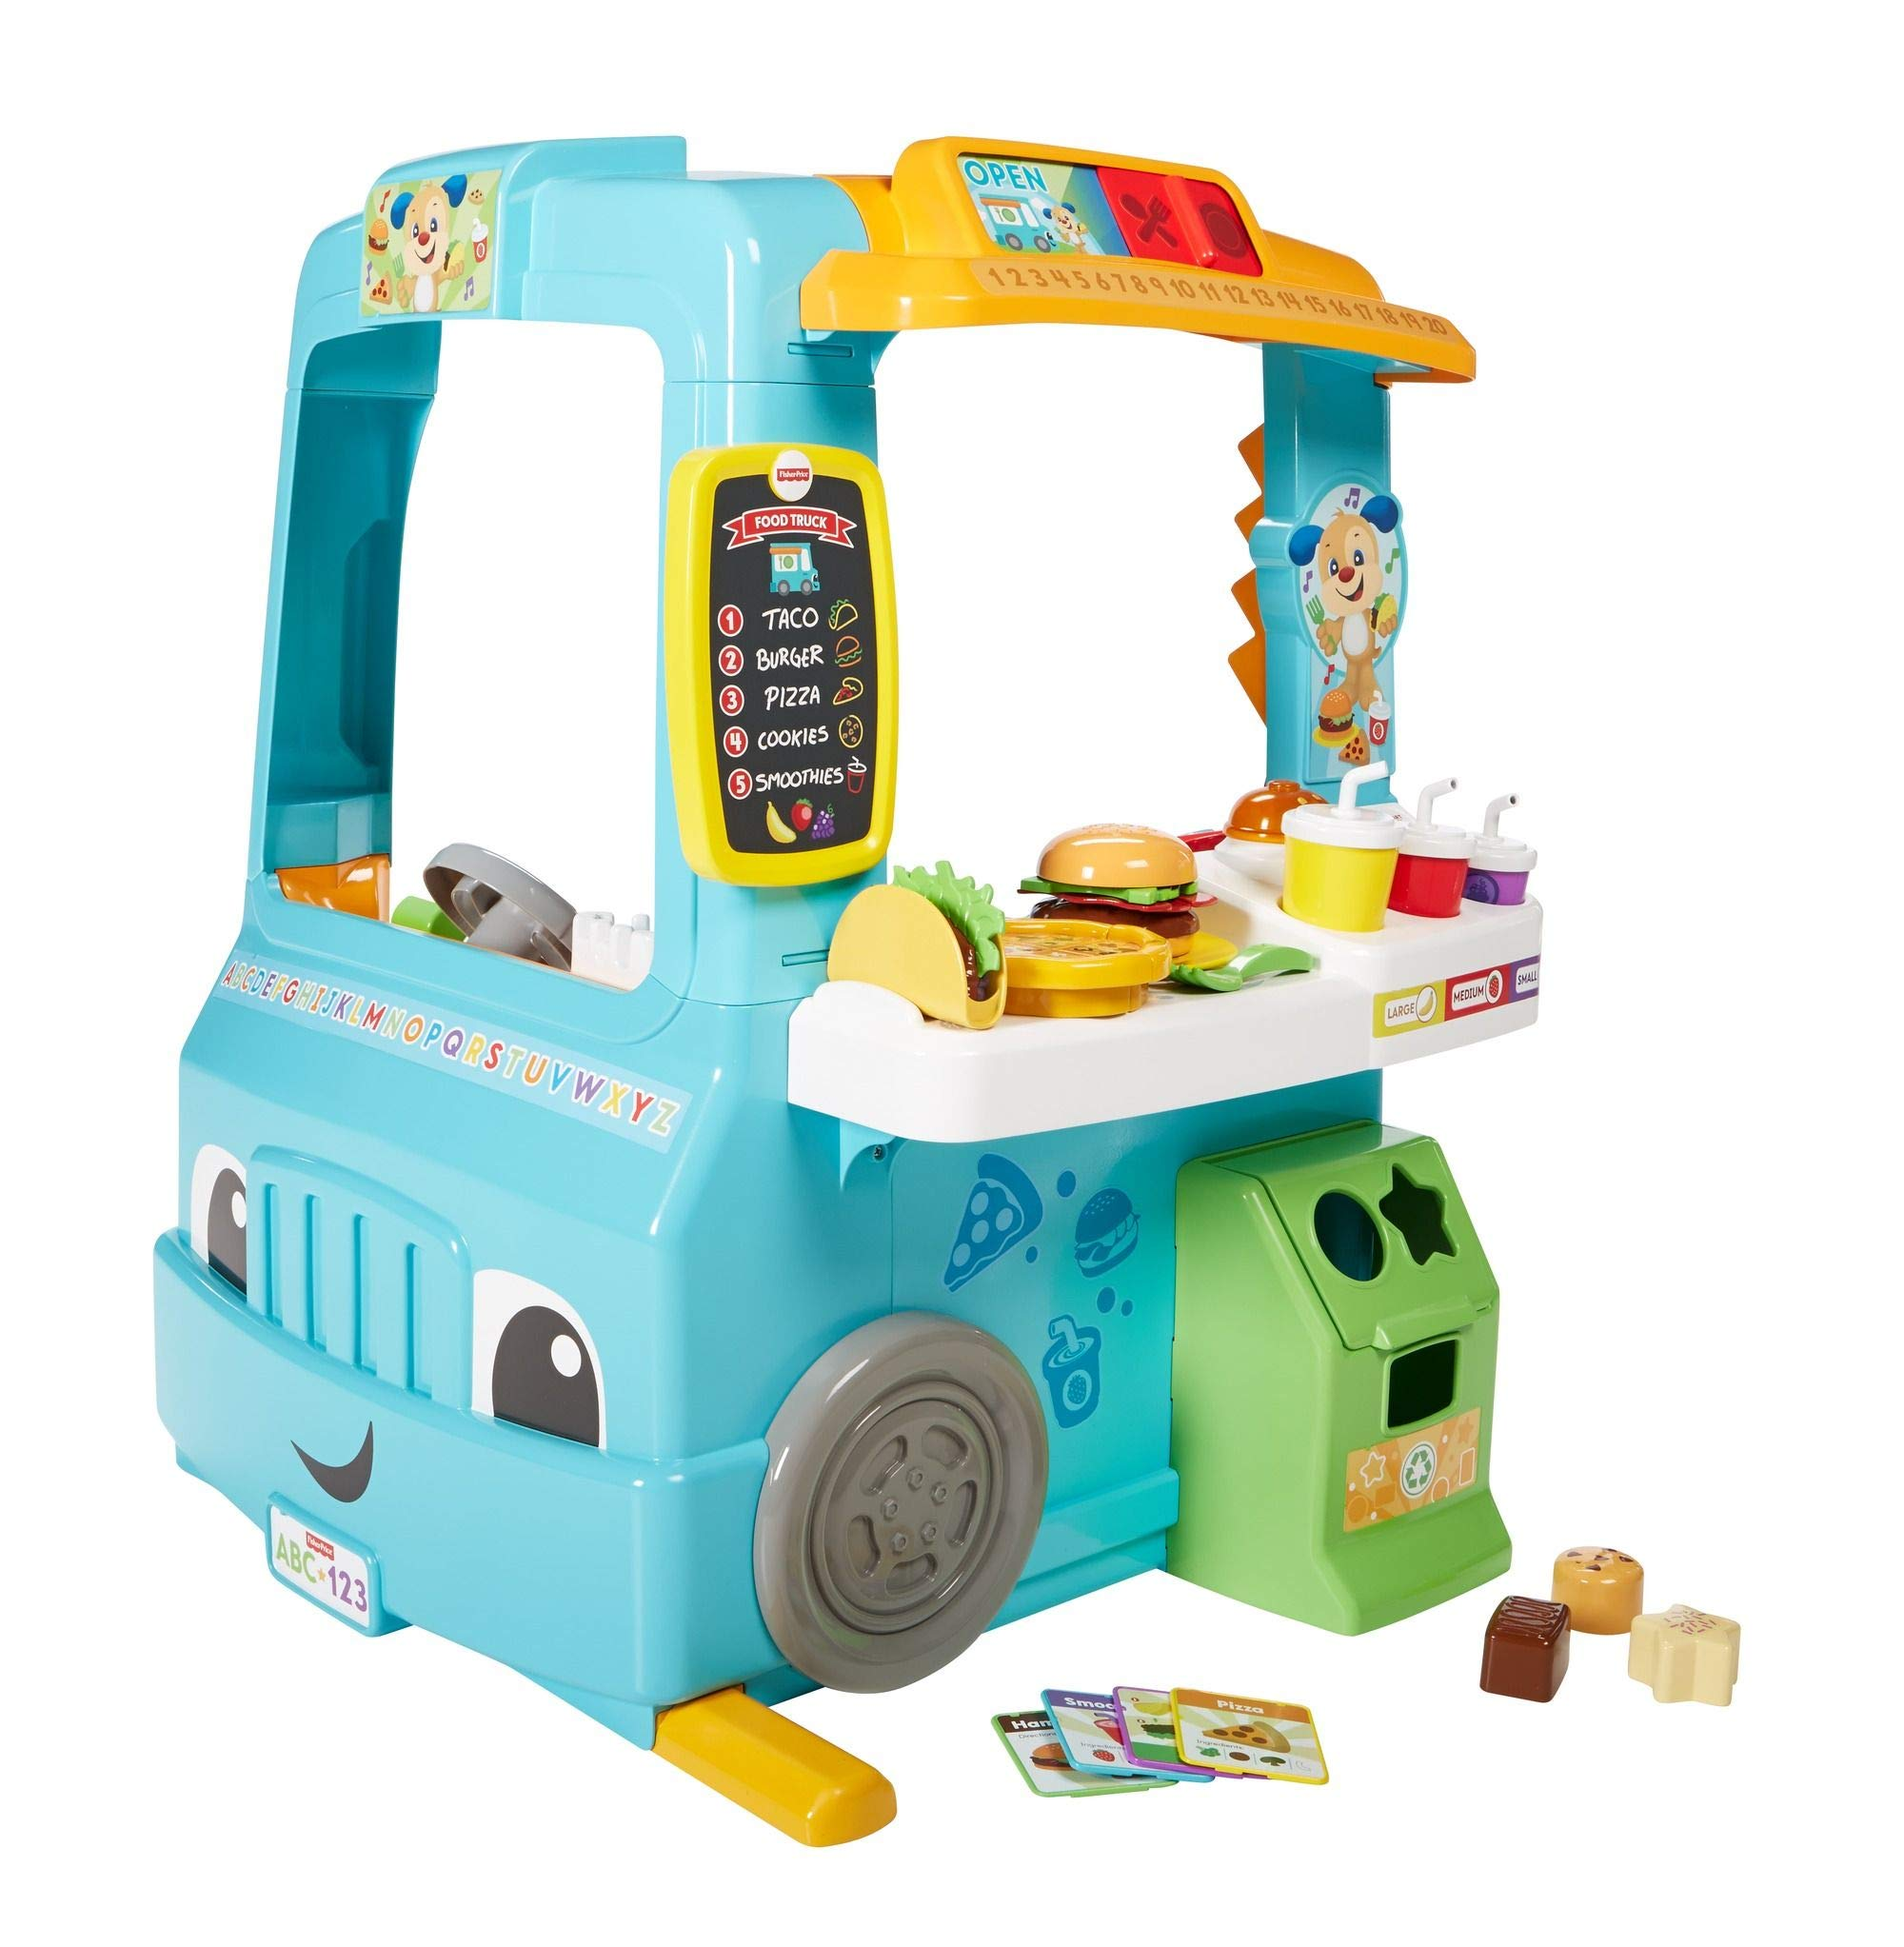 Fisher-Price Laugh and Learn Servin Up Fun Food Truck, Interactive Learning Toddler Role Play Toy, Speaking Toy, Gift for 18 Months Plus by Fisher-Price